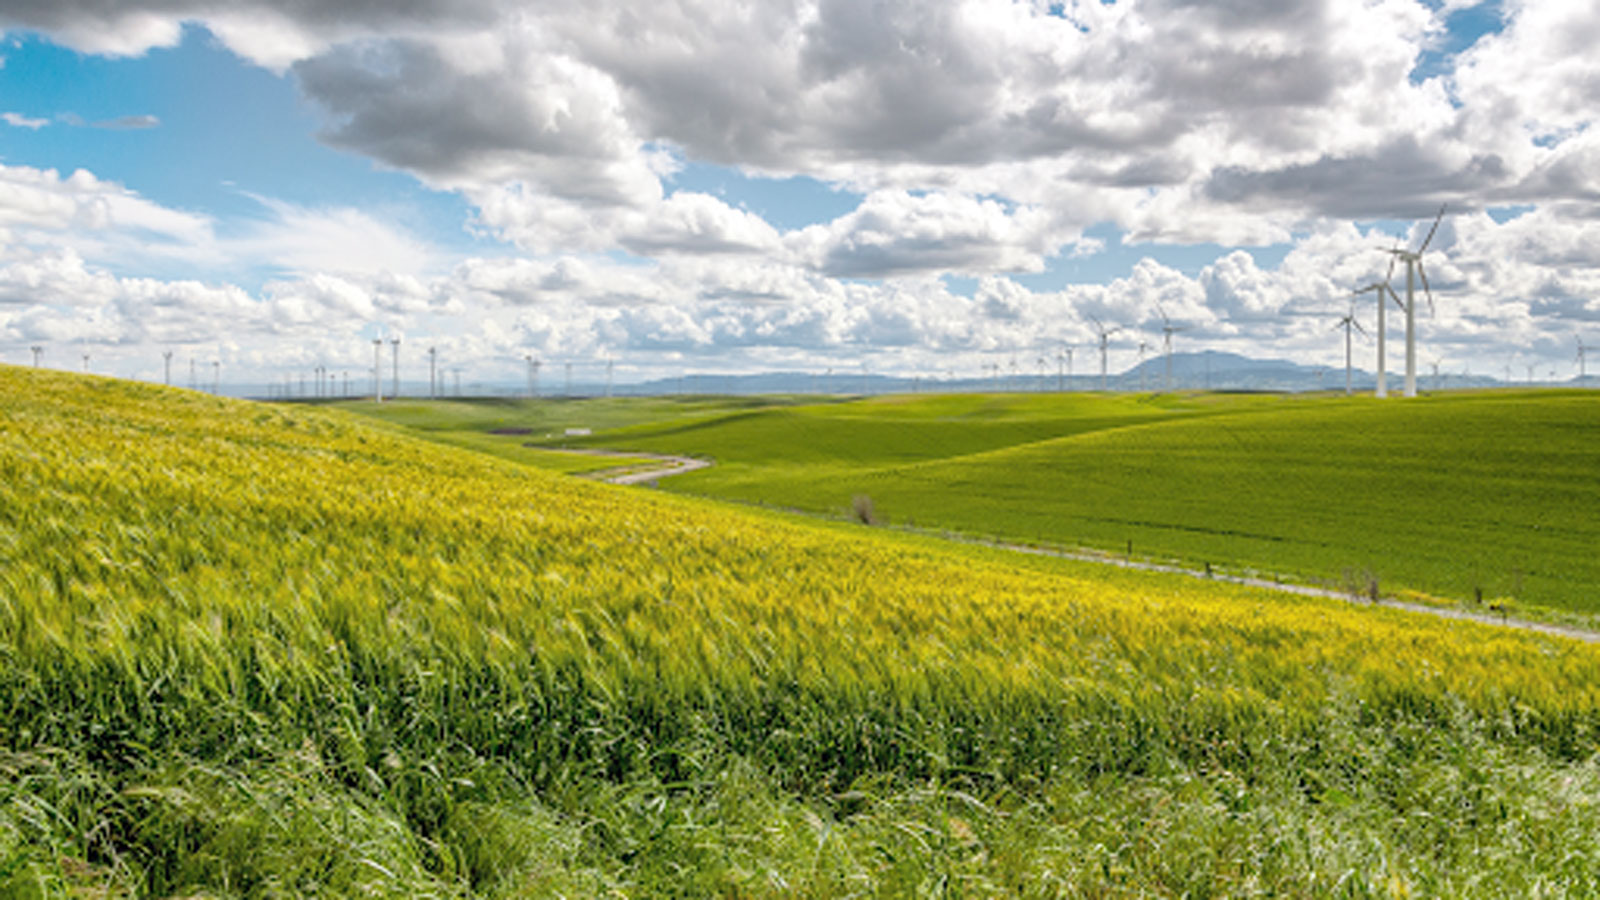 """<h4>CLEAN ENERGY</h4><h5>We're calling for the expansion and extension of clean energy tax credits.</h5><div><a style=""""padding: 8px 15px 10px 10px; font-family: 'open_sansbold' !important; color: #fff; border: none; border-radius: 5px; background-color: #FF0000;"""" href=""""https://environmentamerica.webaction.org/p/dia/action4/common/public/?action_KEY=42202"""">TAKE ACTION</a></div><em>WestBoundary Photography Chris Gill</em>"""